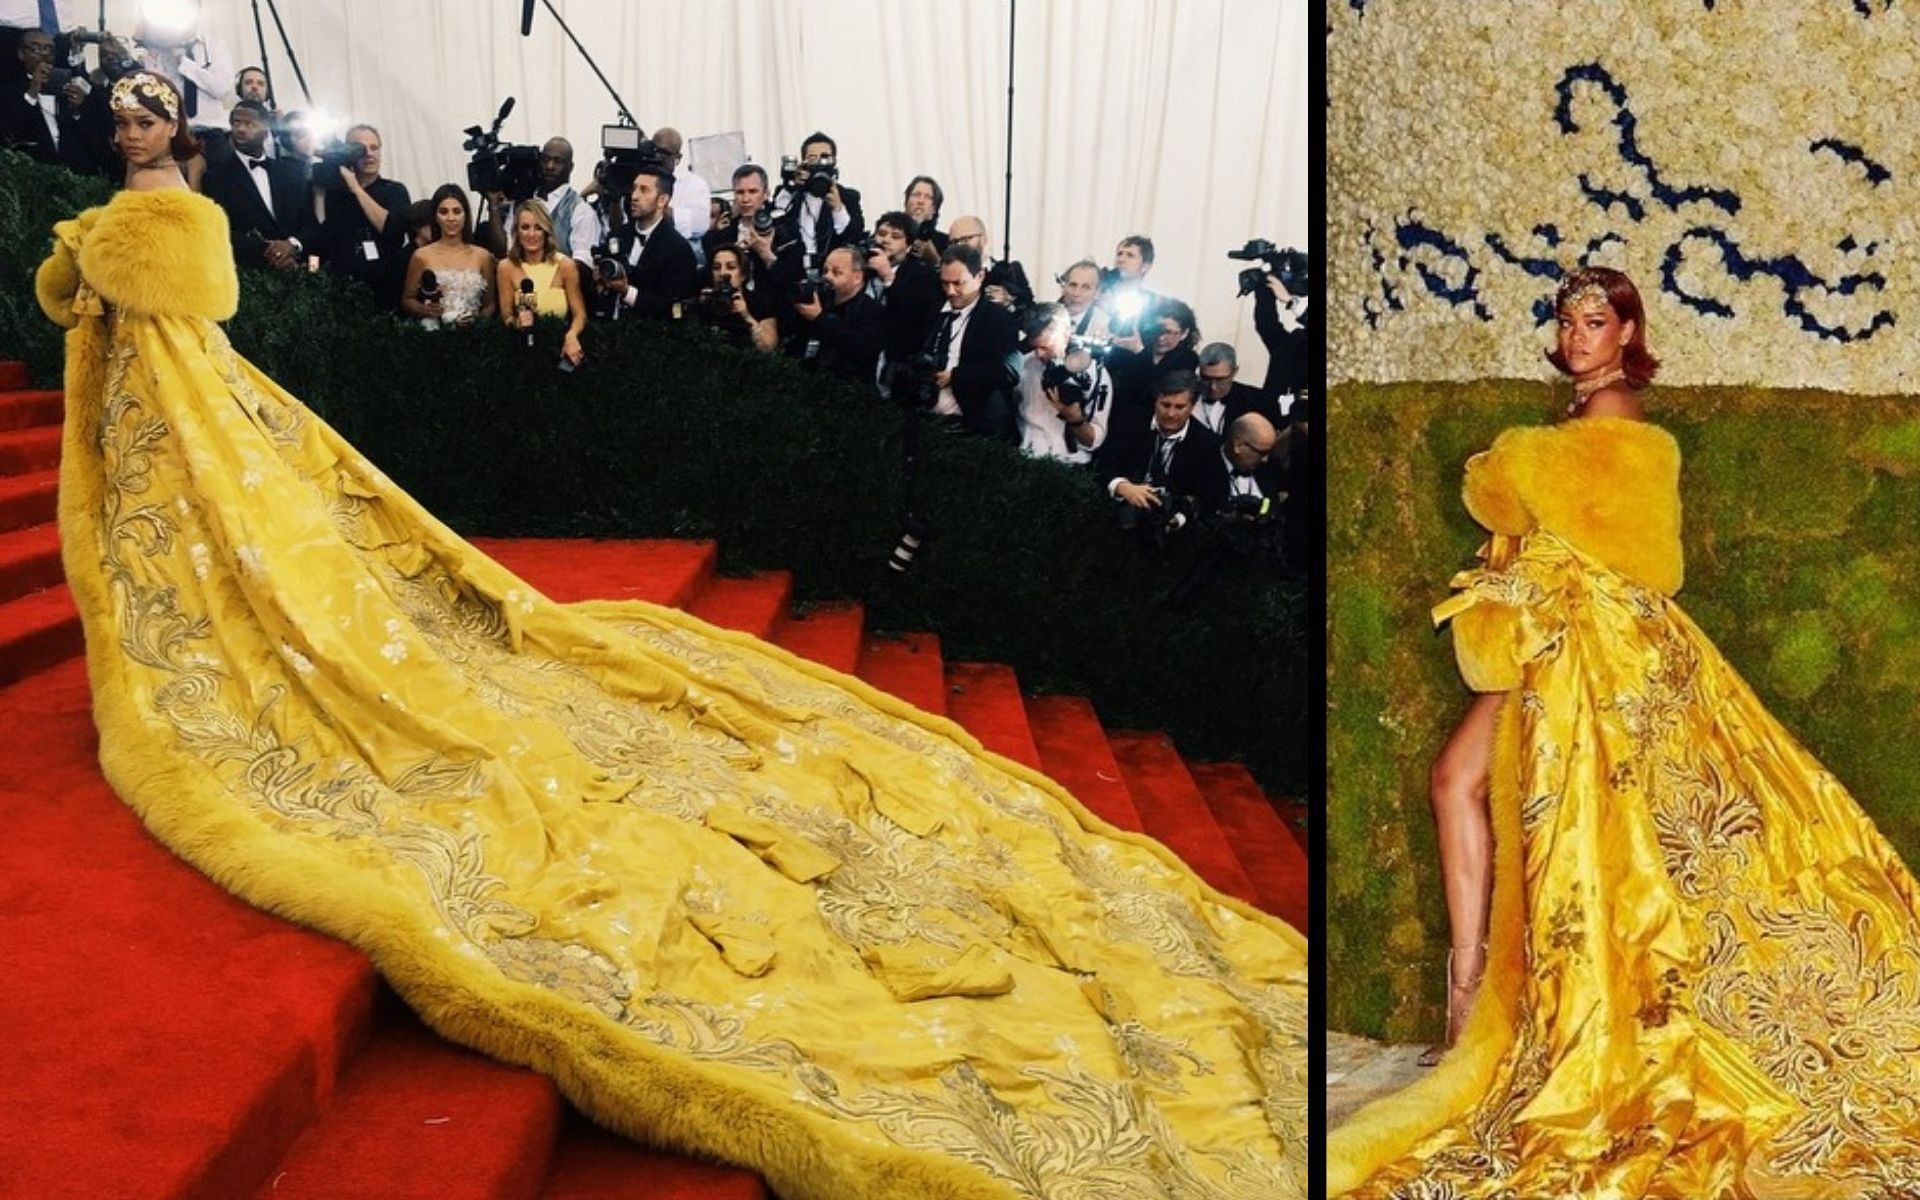 """Rihanna in Guo Pei at the 2015 Met Gala. The theme was """"China: Through the Looking Glass"""". (Photo: Instagram/@metmuseum and @badgalriri)"""